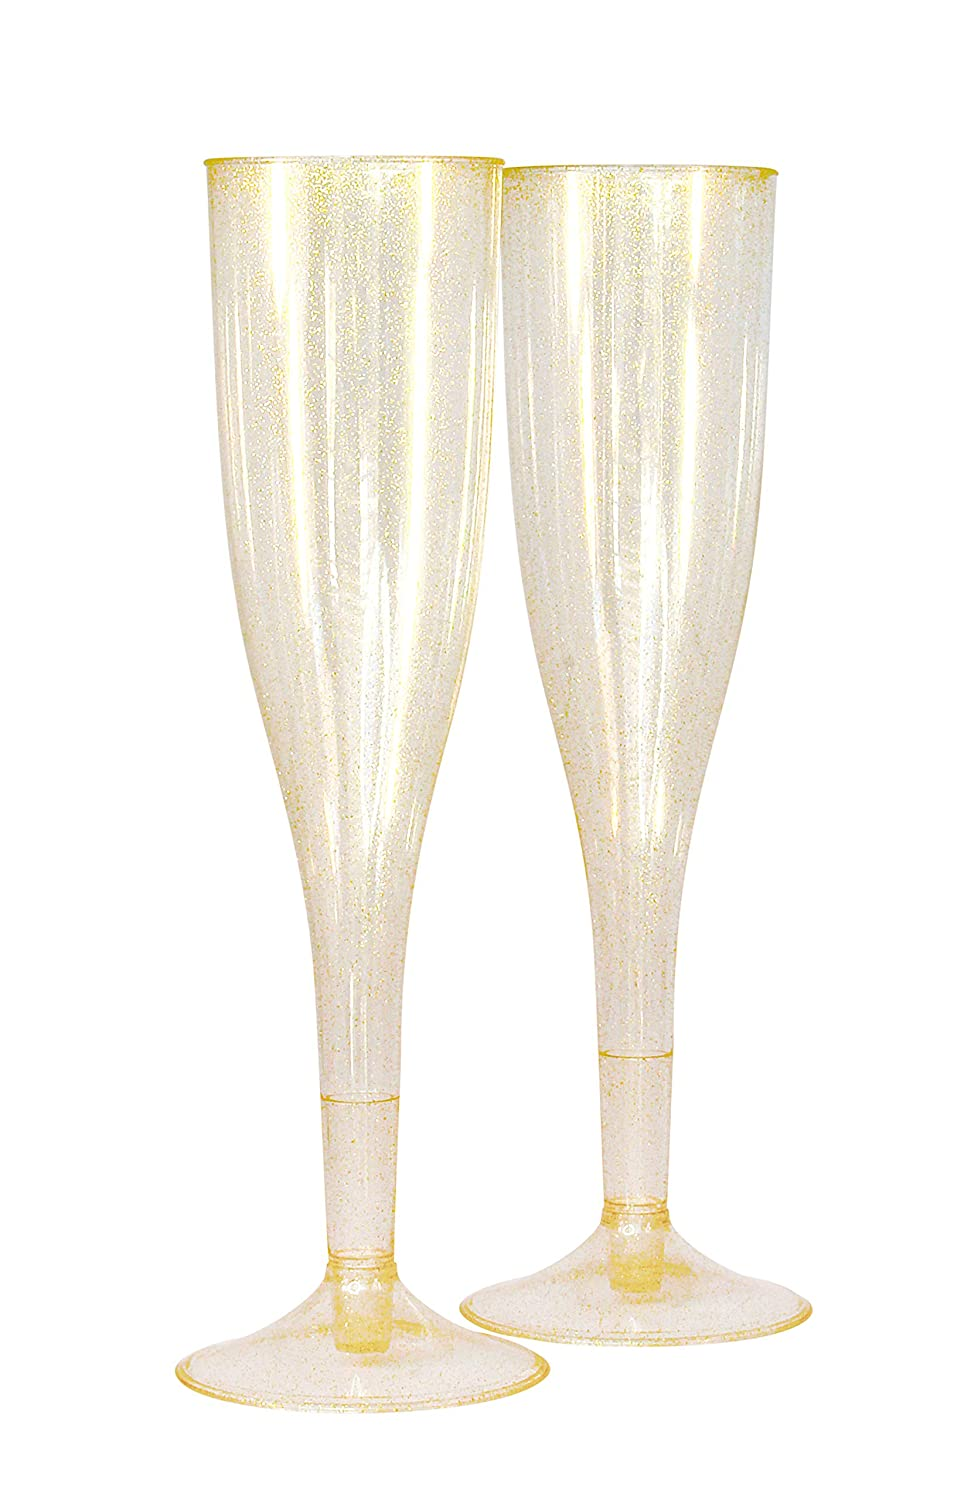 25 Gold Glitter Champagne Flutes | 5.5oz Quality Plastic Sparkling Disposable & Reusable | Perfect for Wedding Toast & Bridal Party & Birthday Reception & New Year's Eve Cocktail & Formal Gathering The Butler